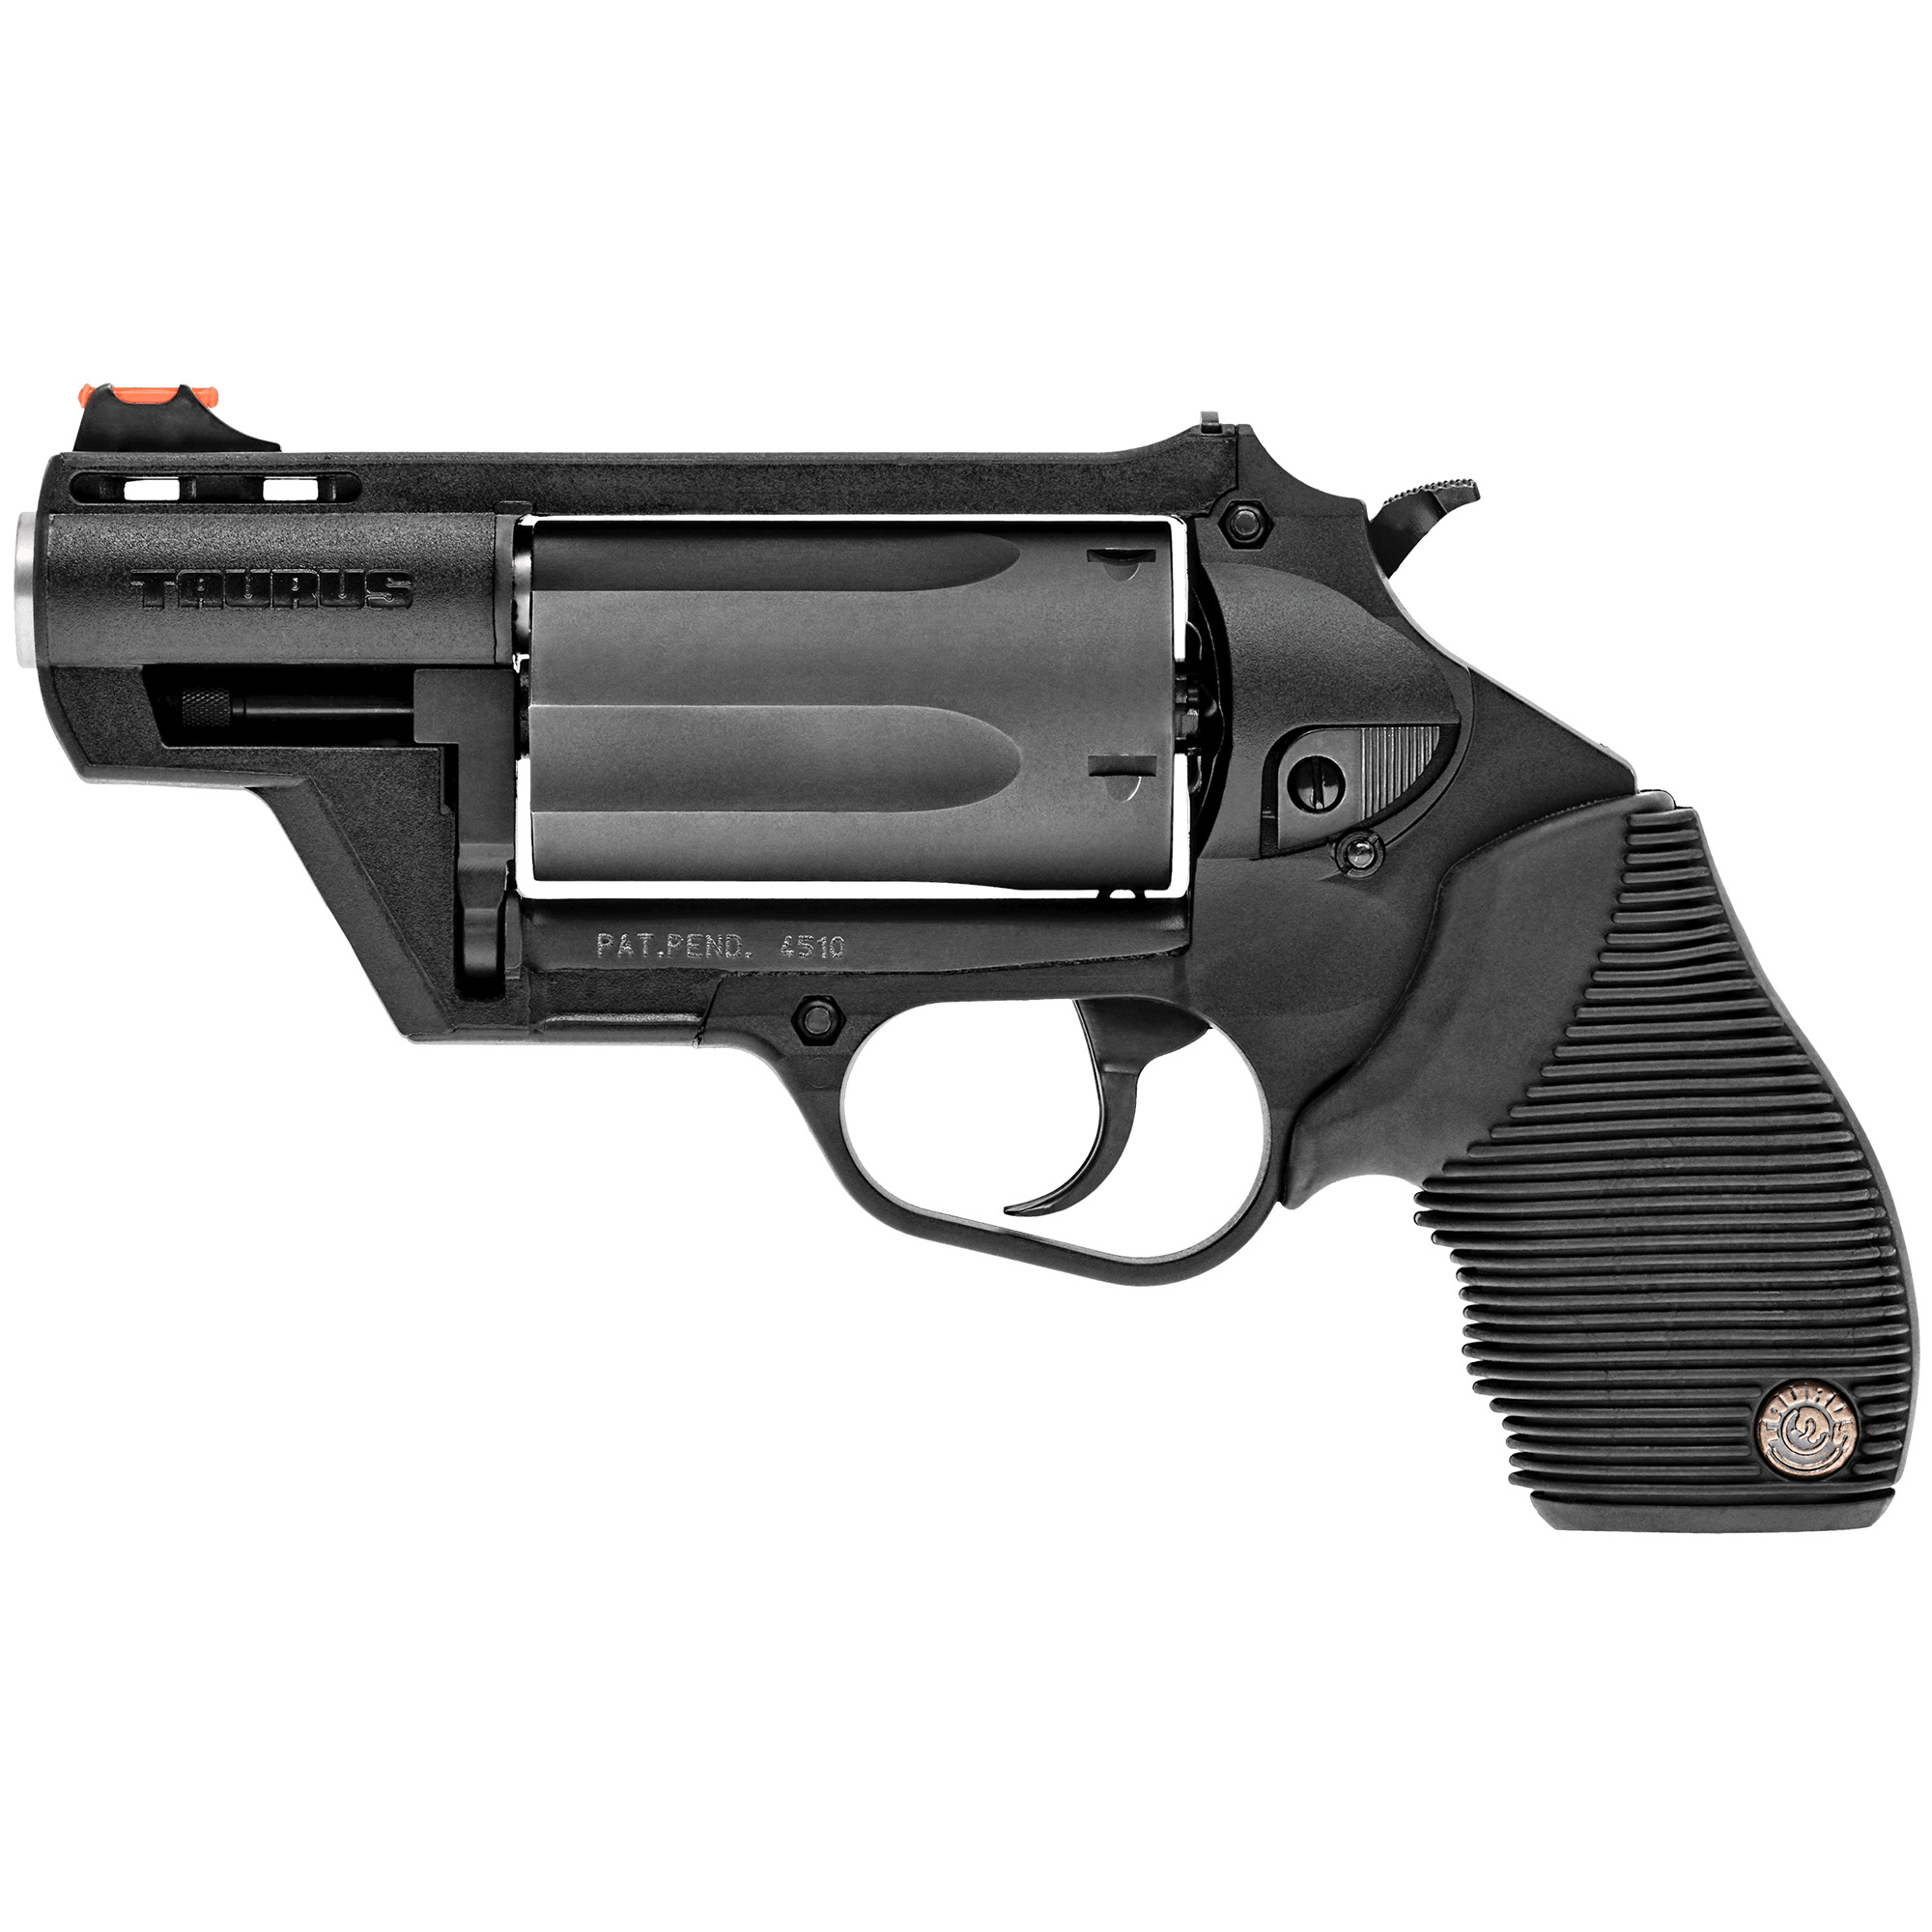 """Check out the revolutionary new Public Defender Polymer. This scaled-down model of everyone's favorite combo gun"""" the Taurus Judge"""" still gives you the ability to fire your choice of ammunition-now in a size that fits in most pockets."""